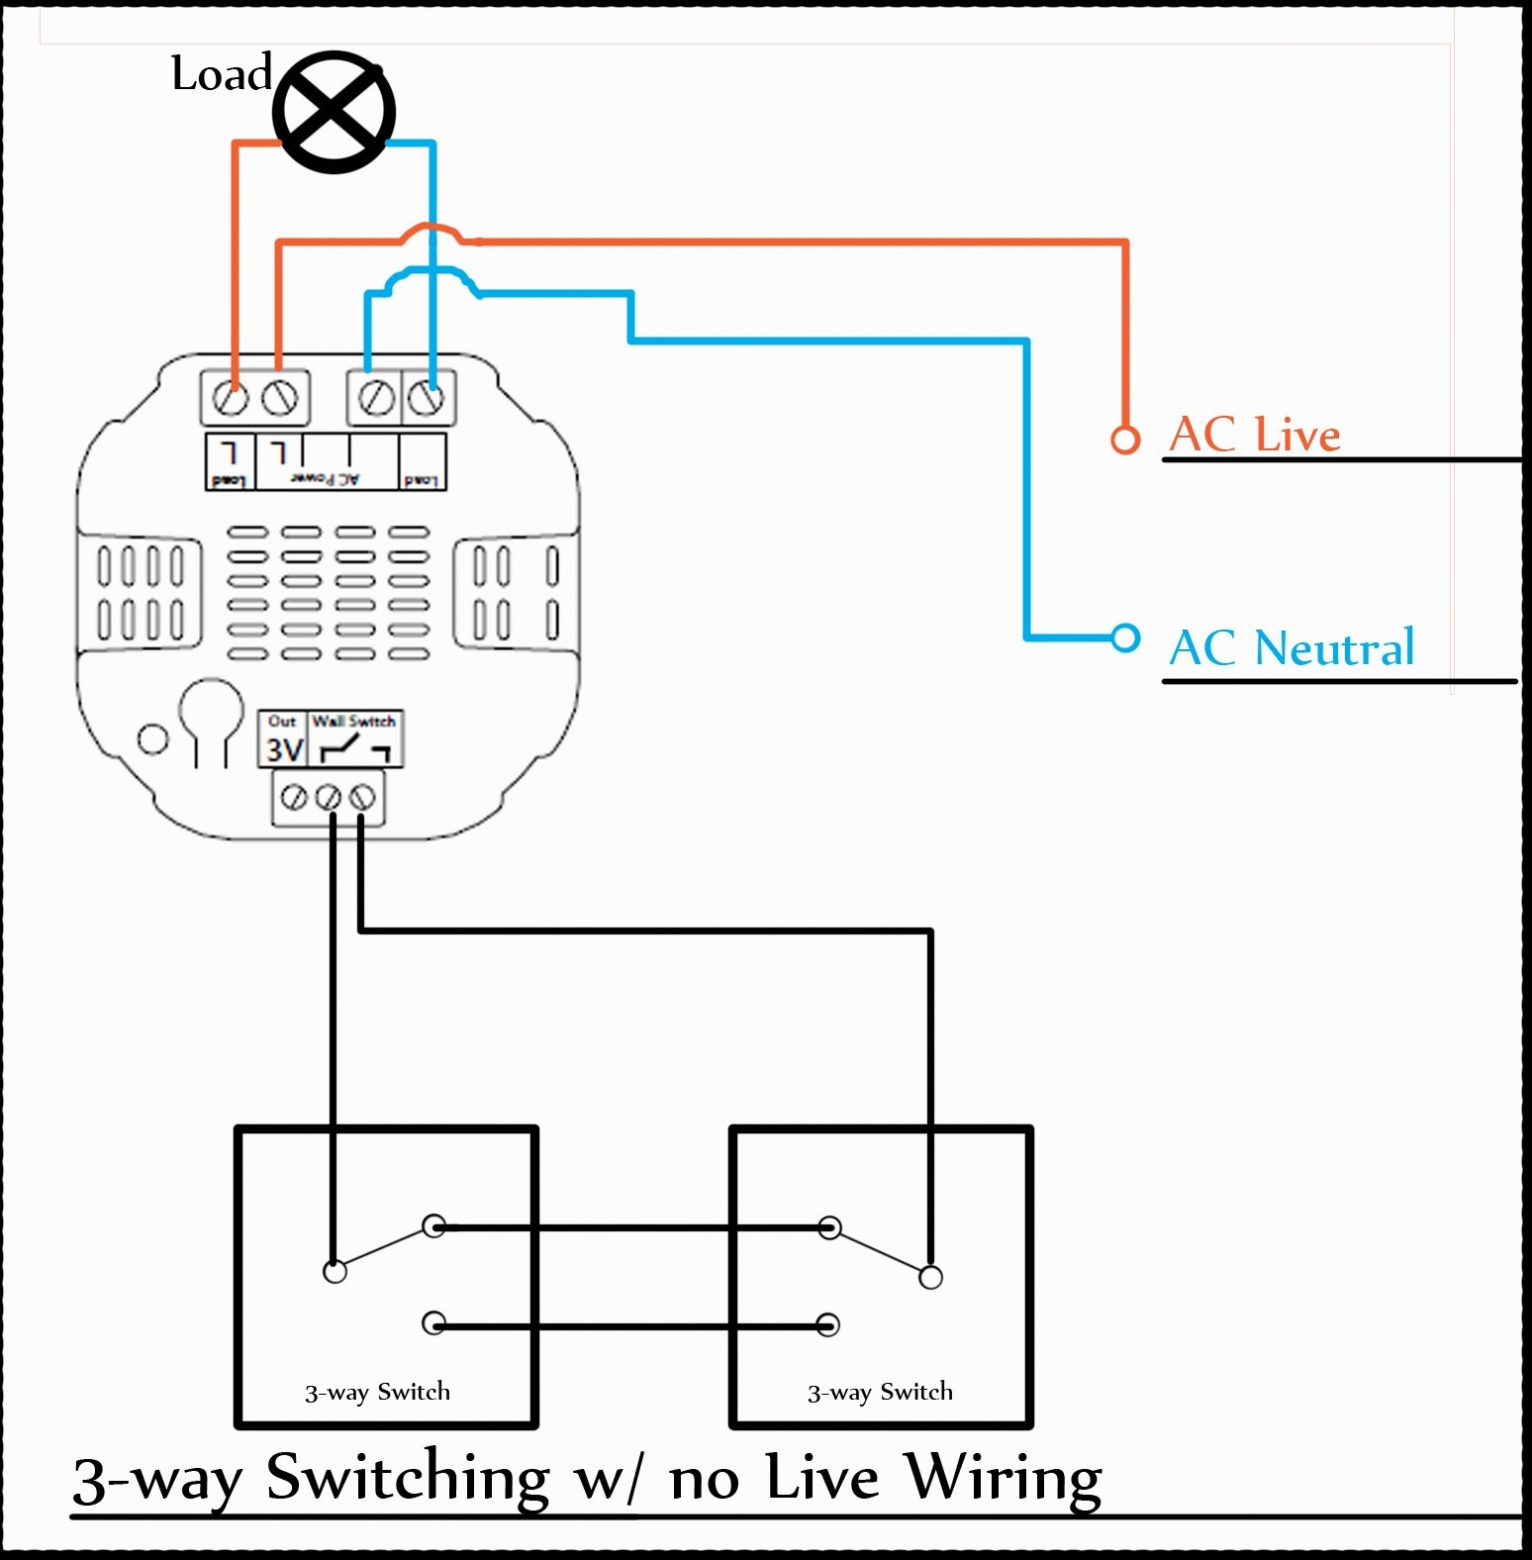 Vintage Air Gen Iv Wiring Diagram | Wiring Library - Vintage Air Wiring Diagram